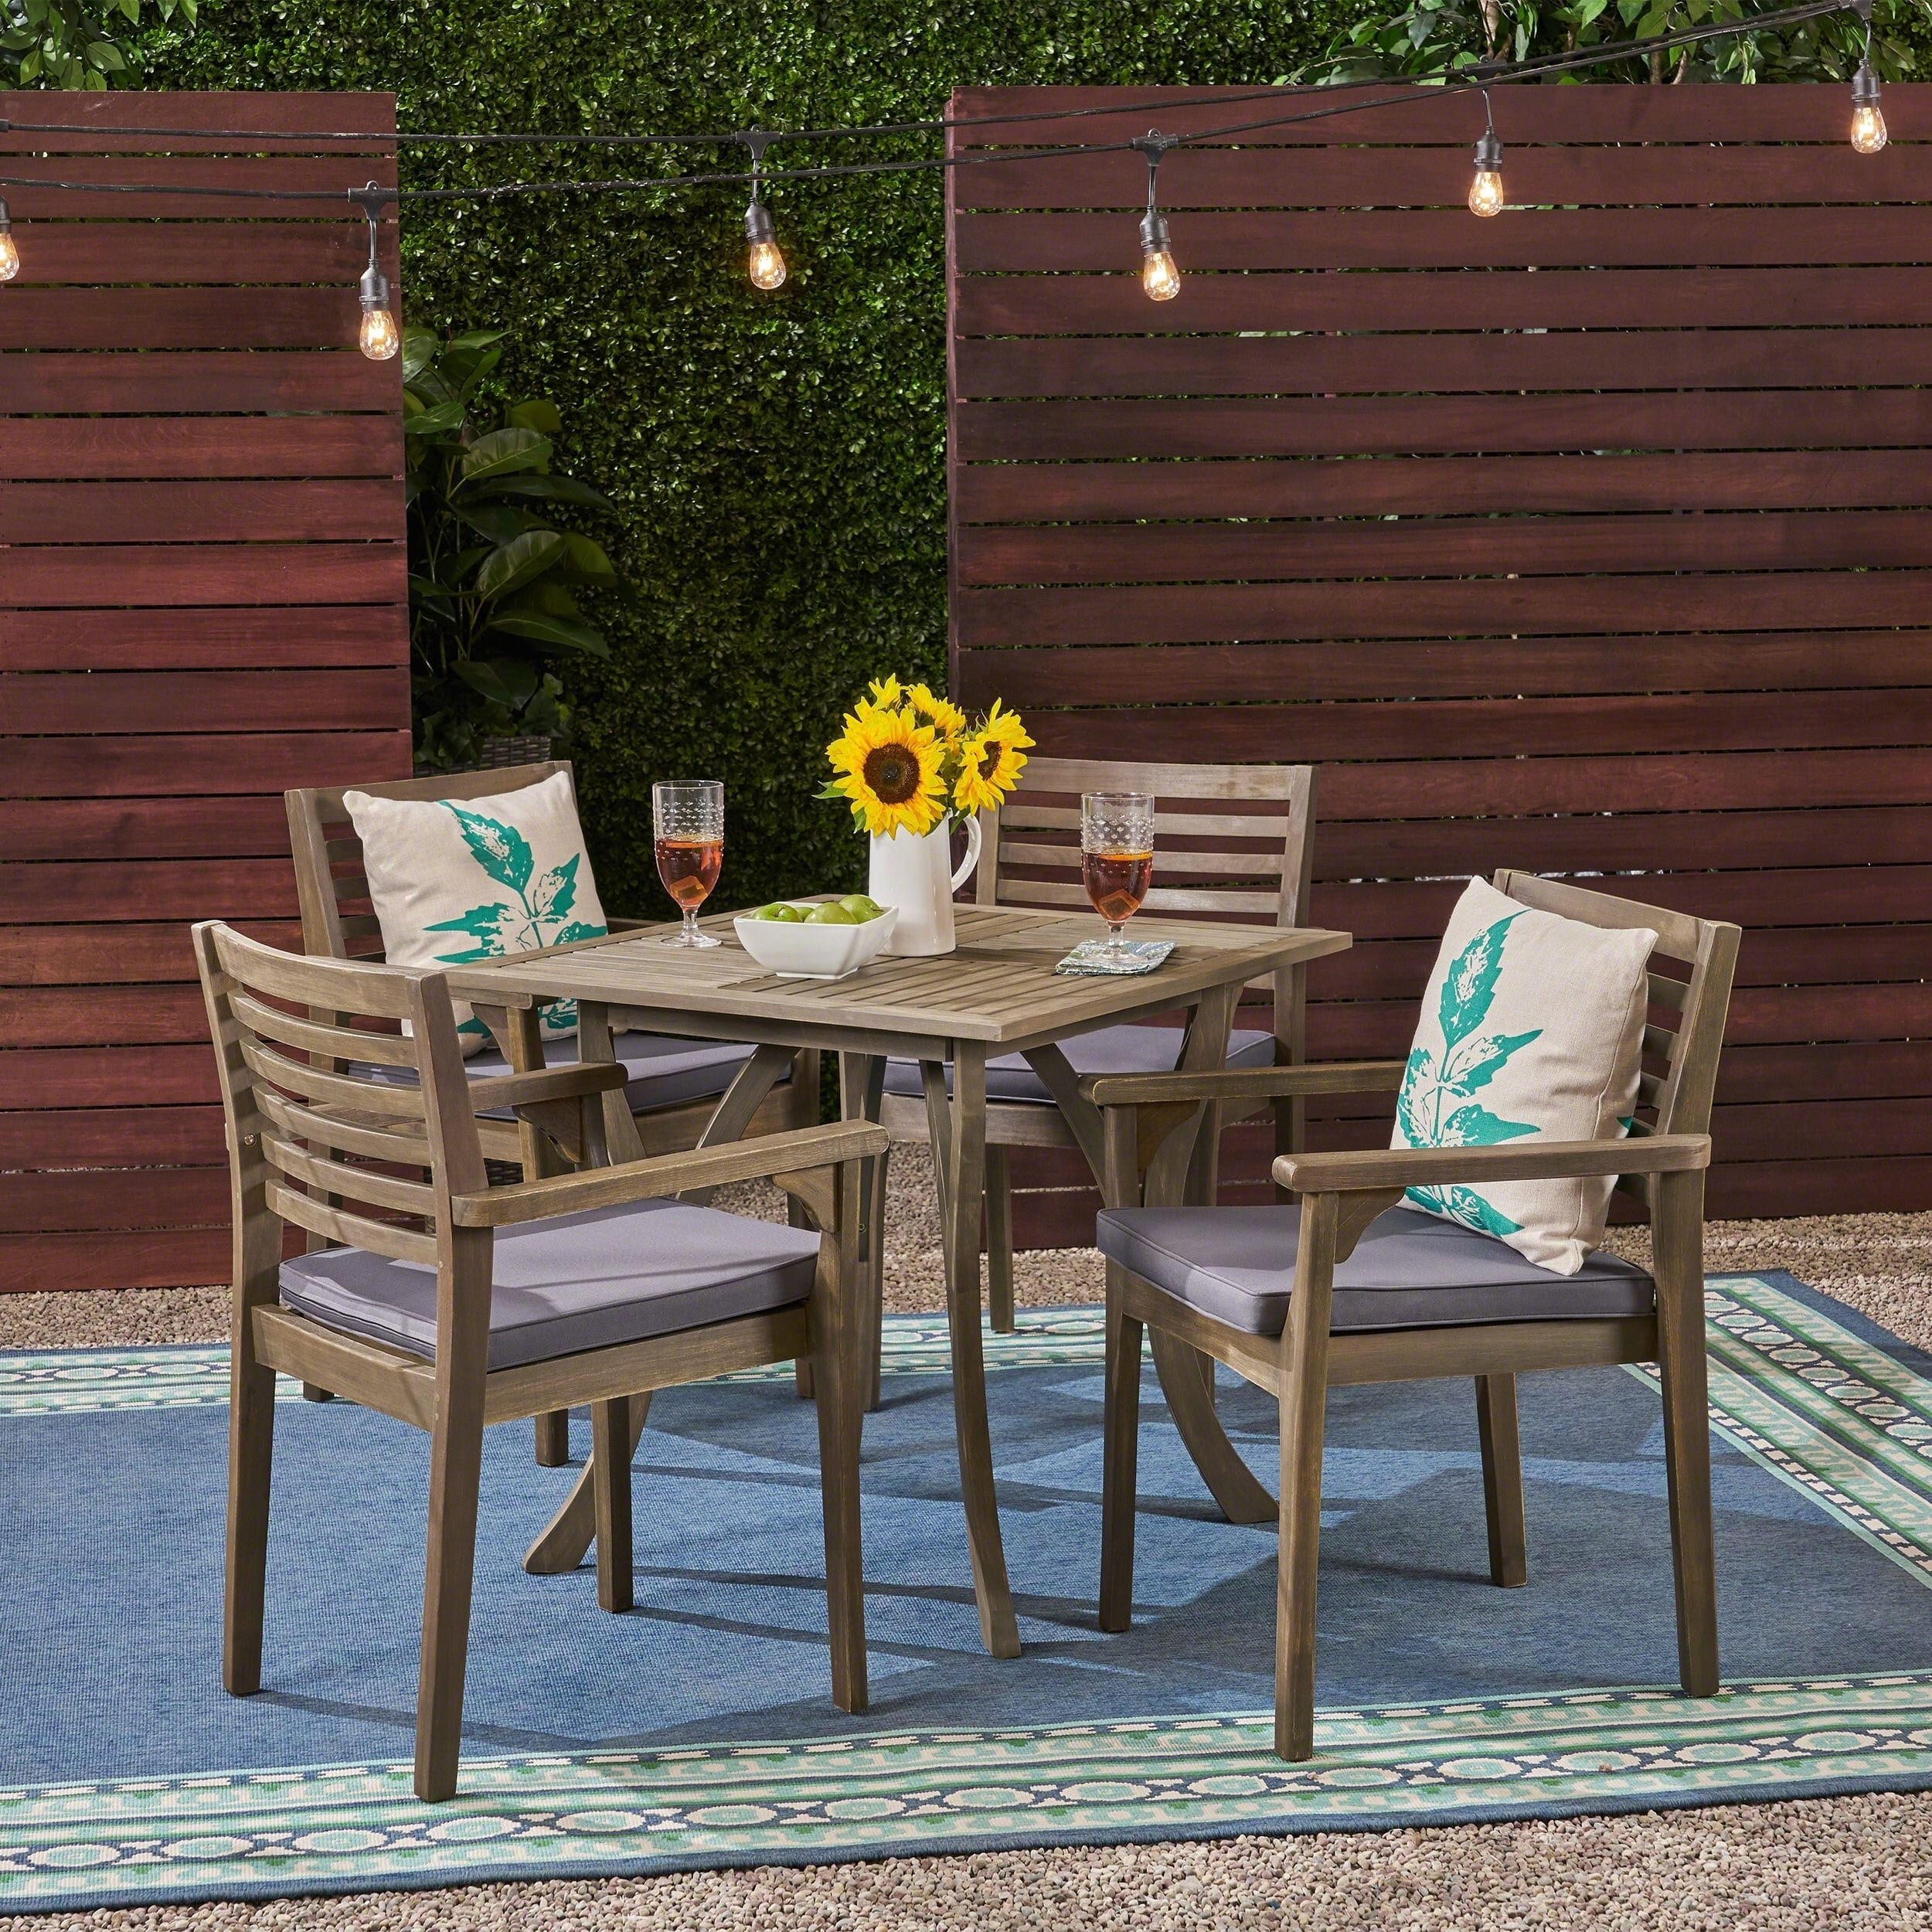 """Christopher Knight Home Casa Outdoor 4-Seater 32"""" Square Acacia Dining Set with Carved Legs by"""